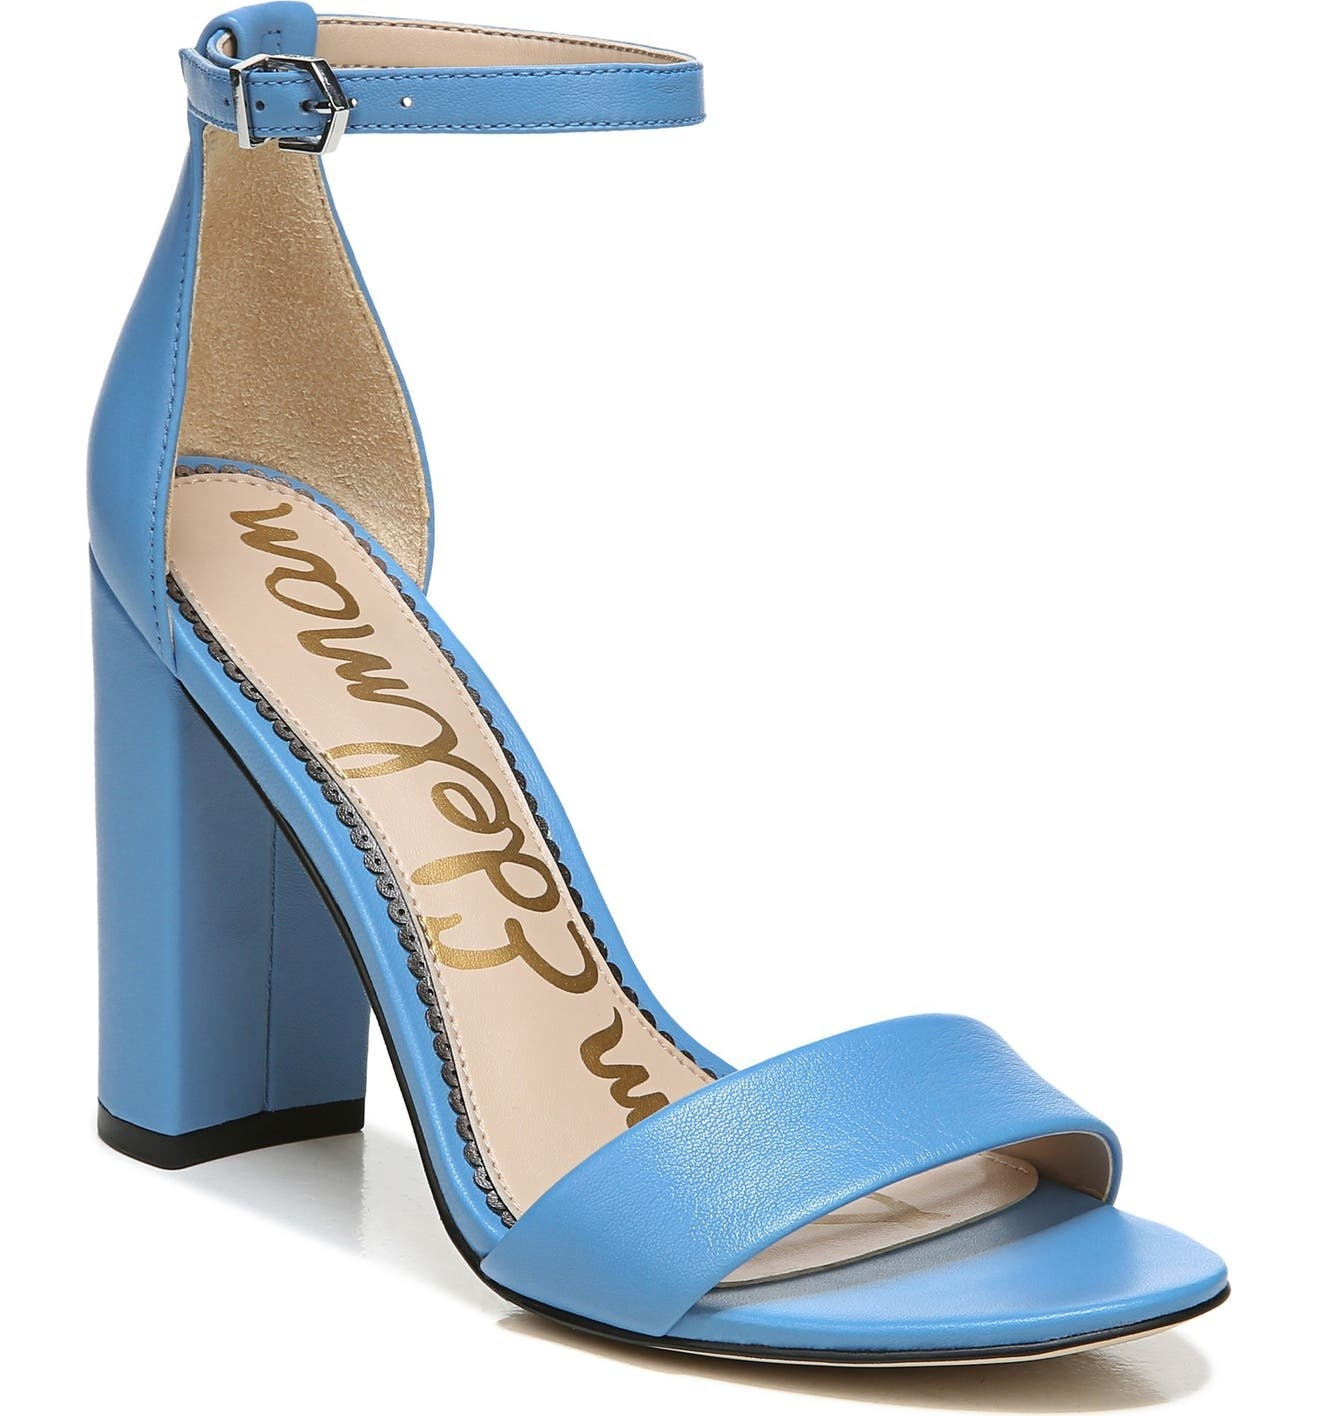 The sandals in Blue Leather